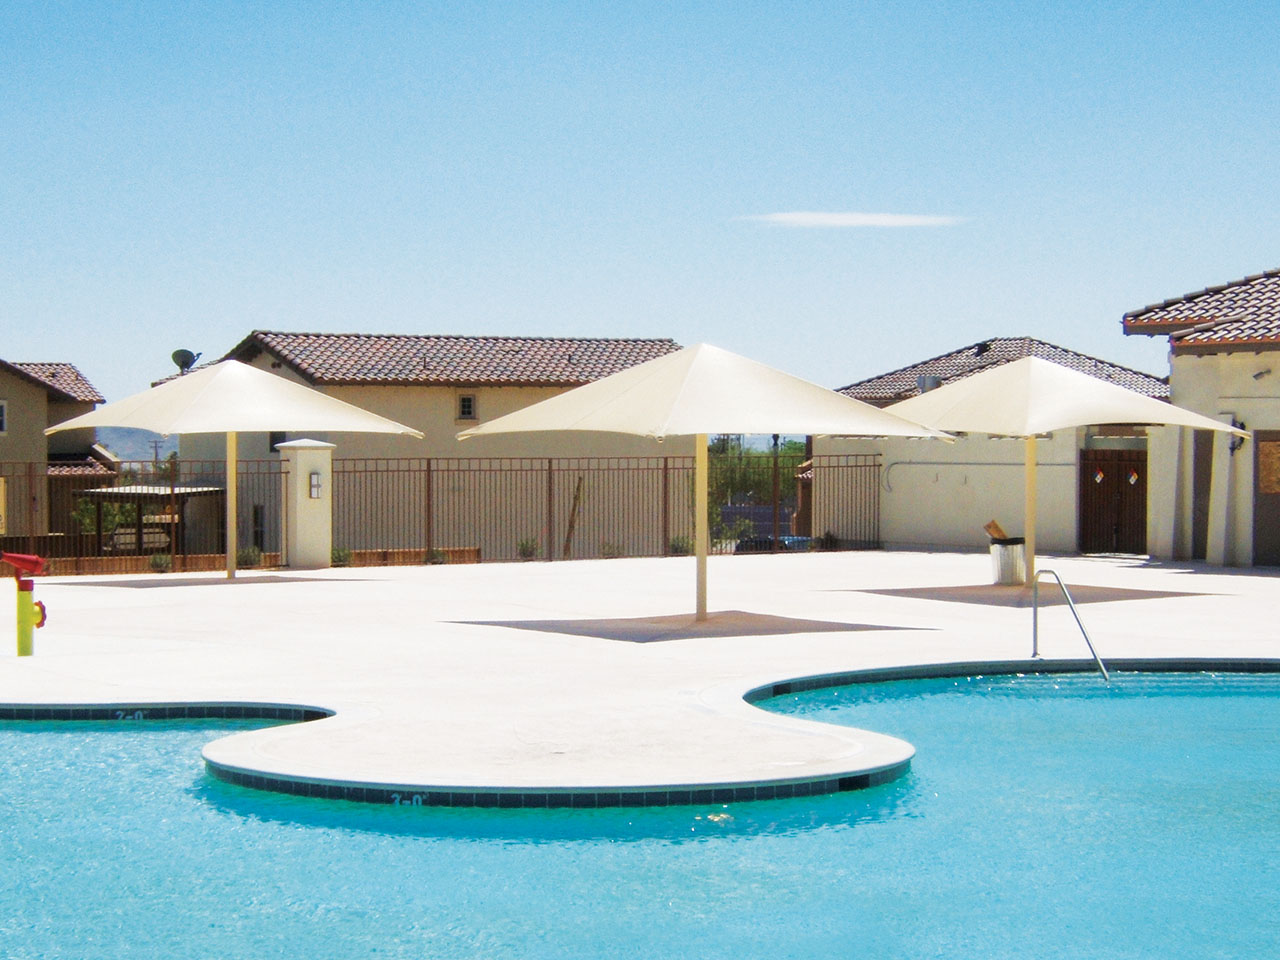 Community Pool Shade Structures - Fort Irwin Community Pool